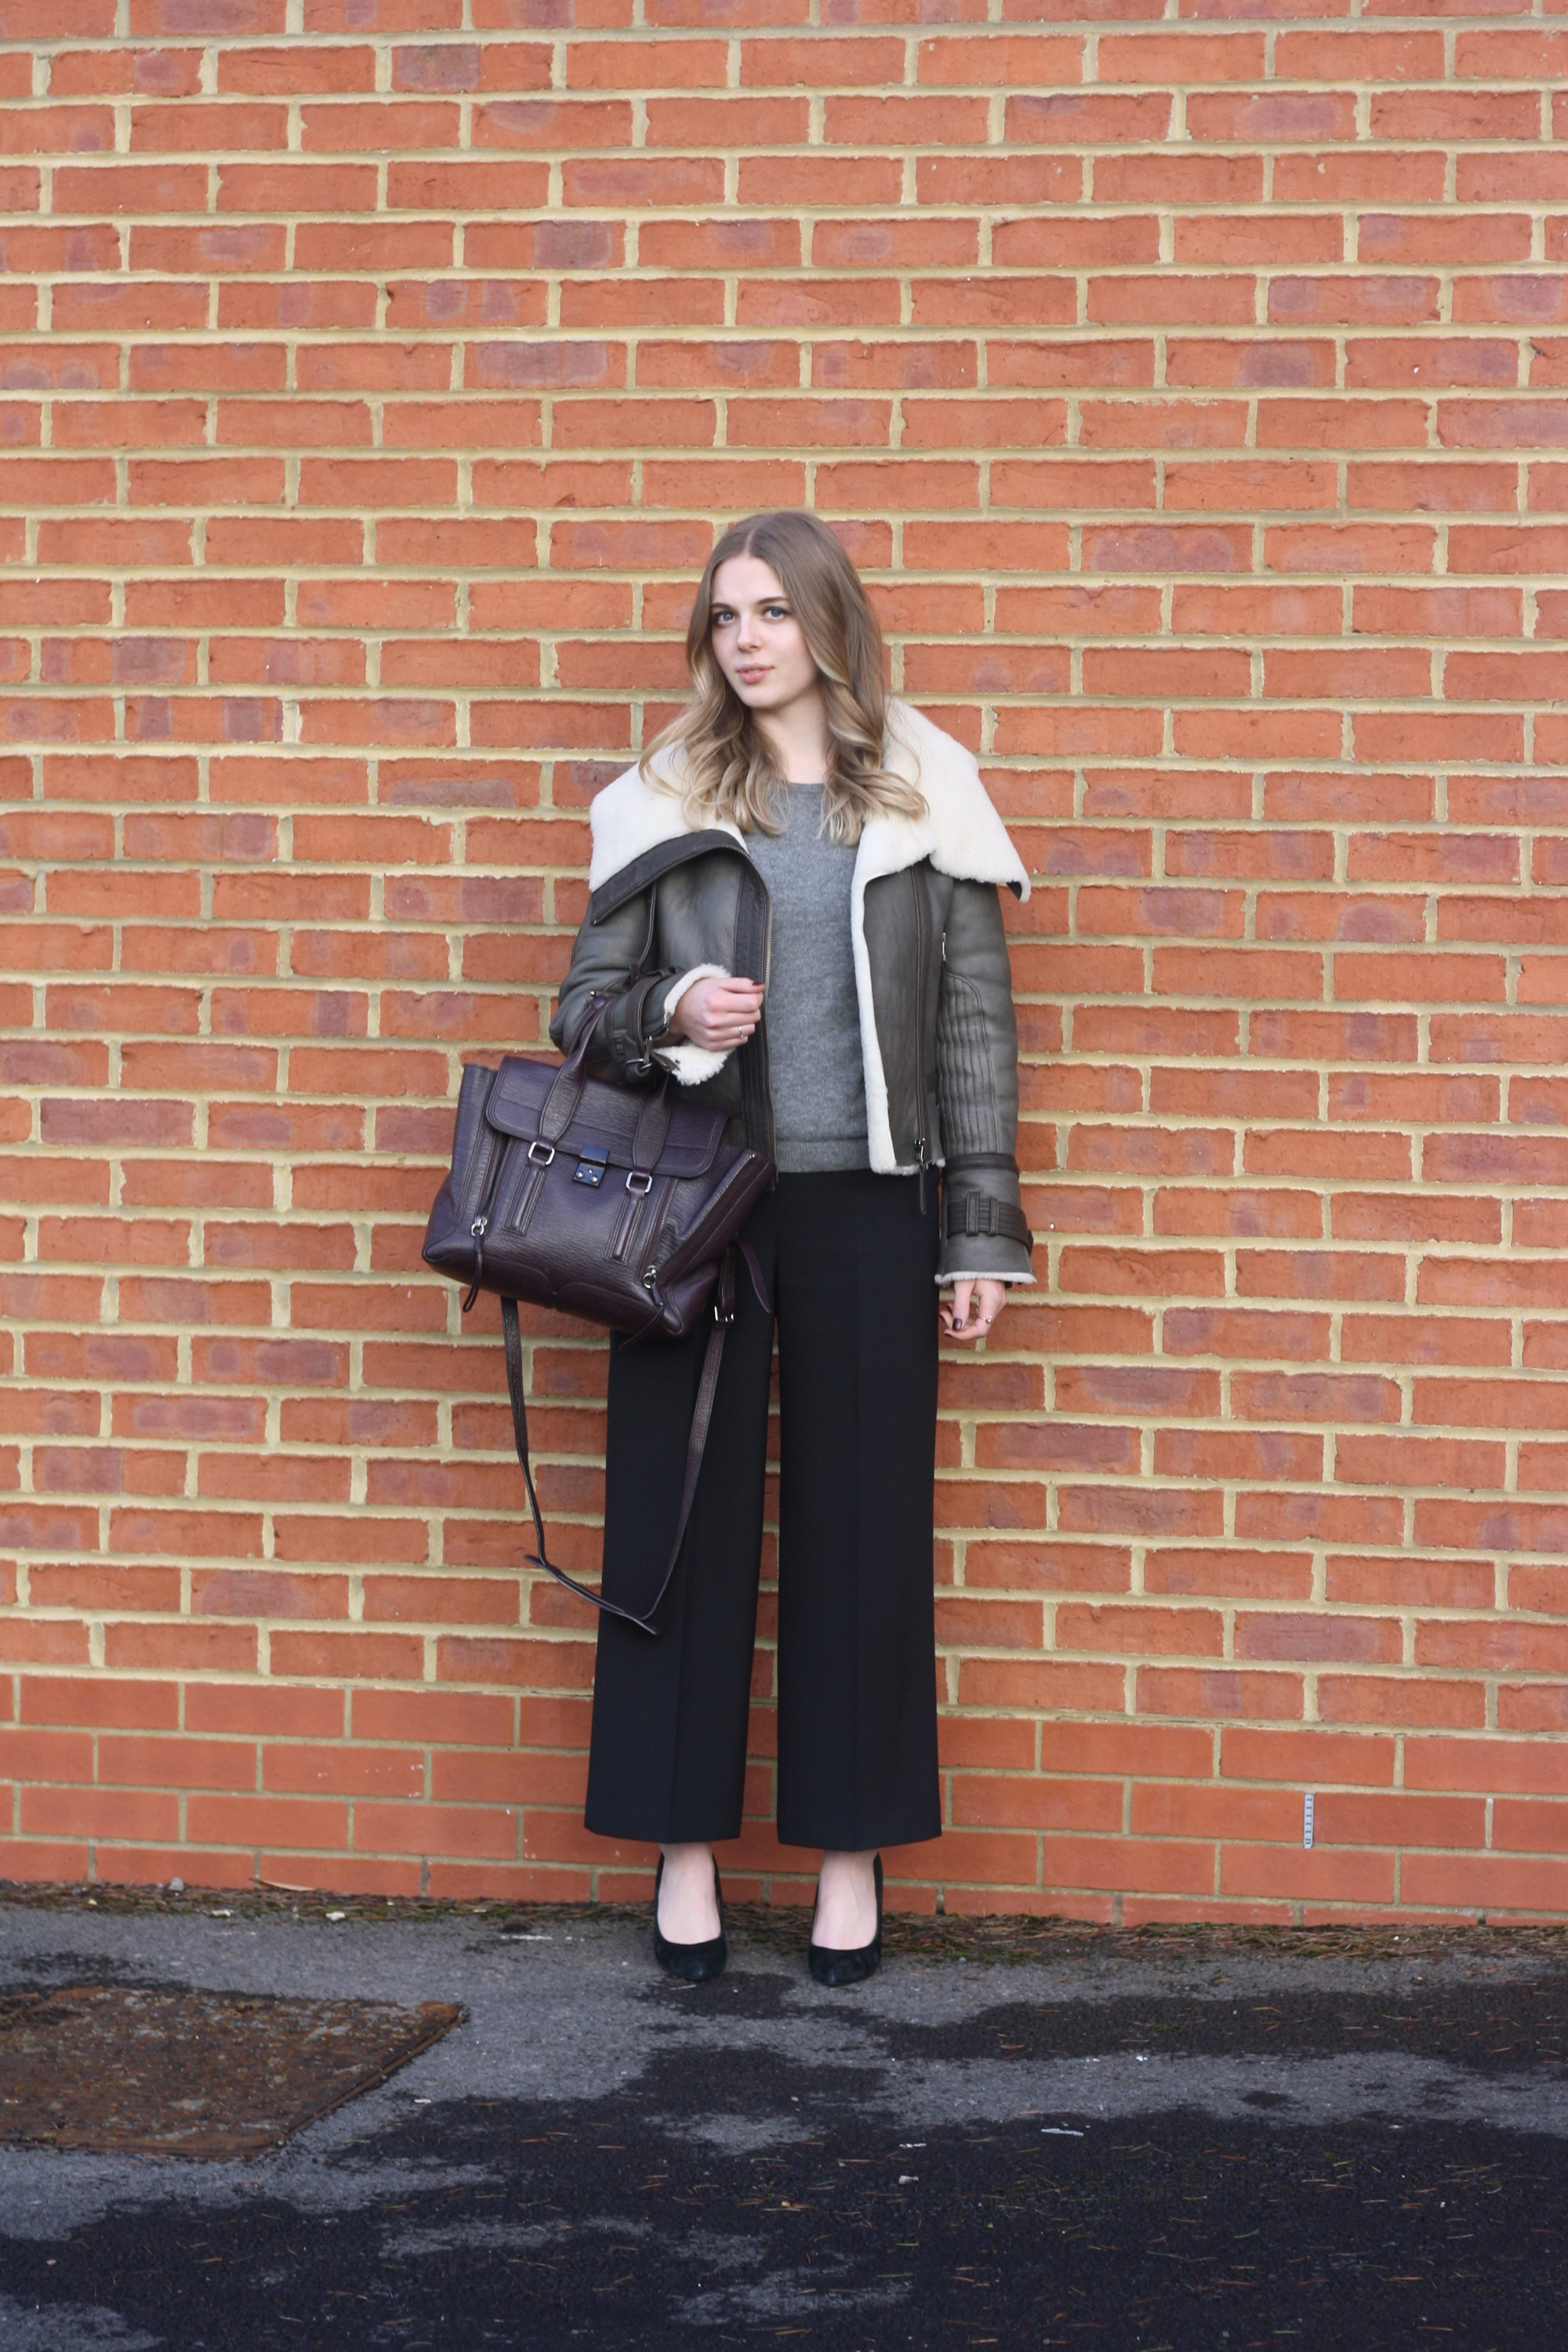 Topshop shearling jacket, HM grey cashmere sweater and Zara black trousers